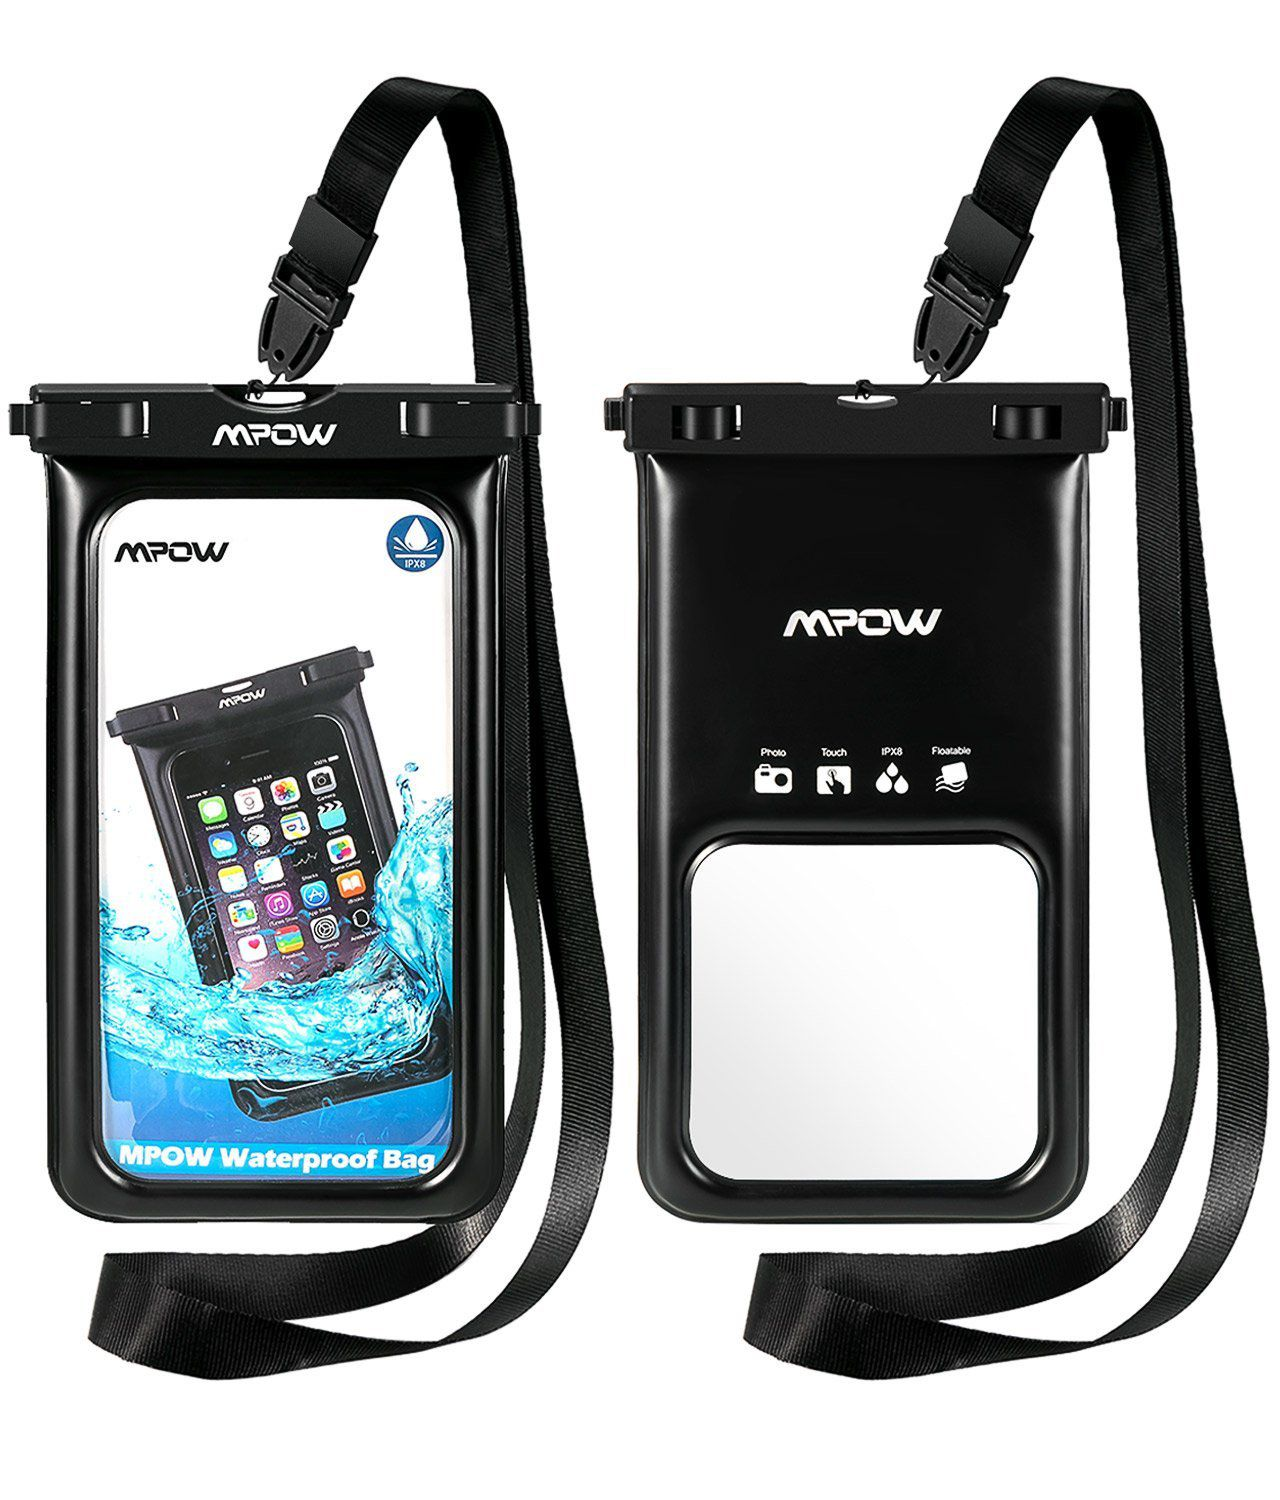 sale retailer 7cd33 a6f30 Mpow [ upgraded ] Floating Waterproof Case, IPX8 Waterproof Phone ...